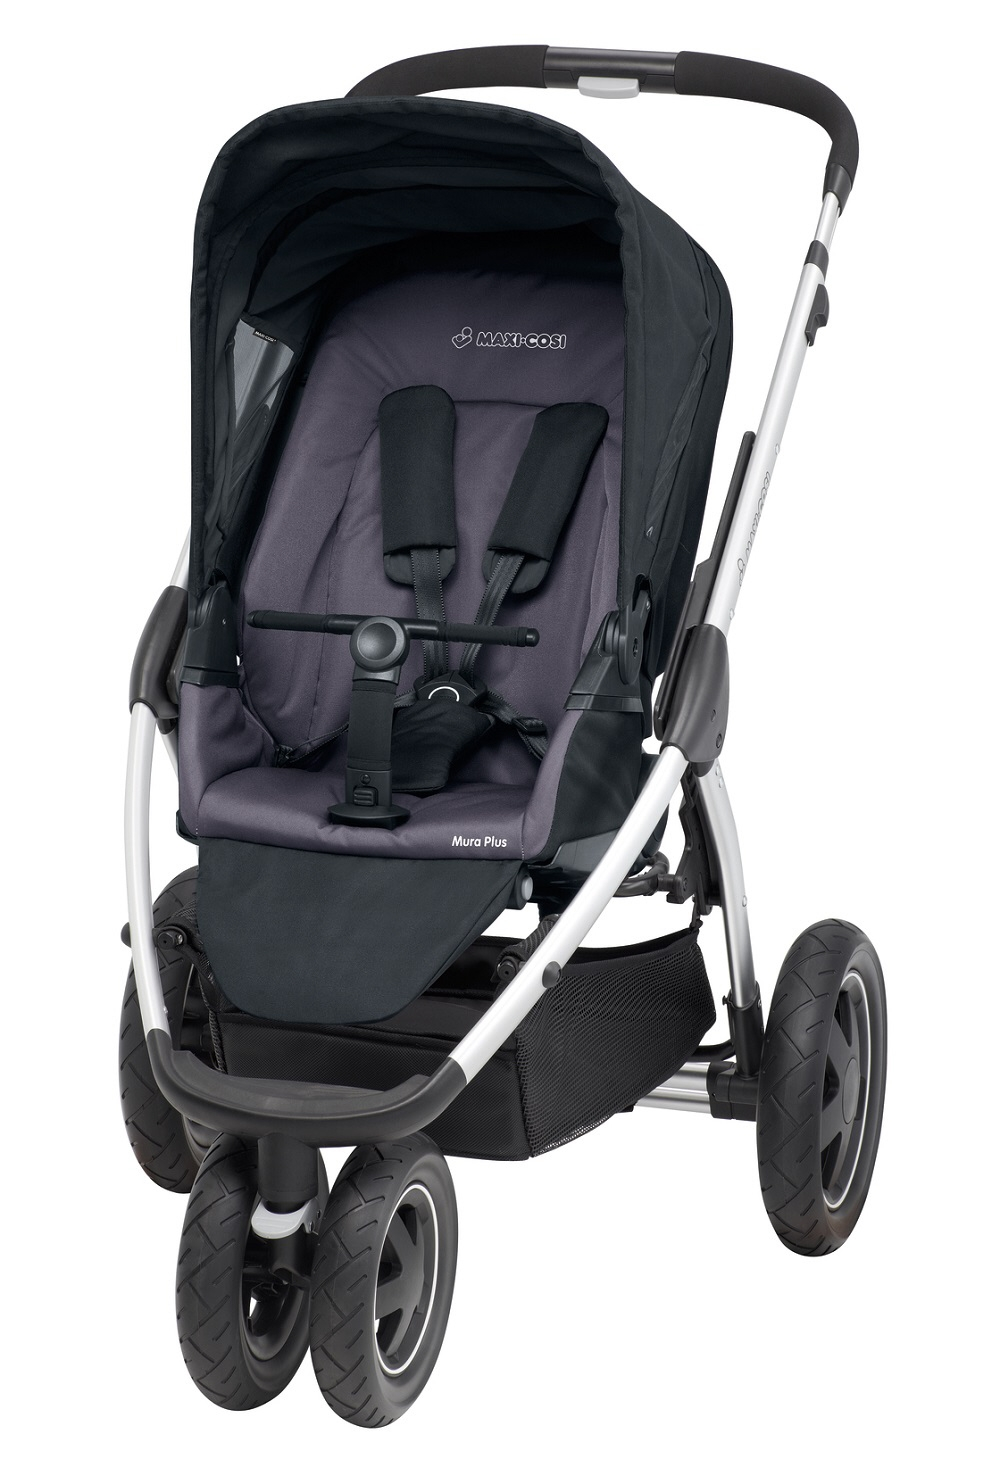 maxi cosi mura plus 3 sport stroller buy at kidsroom strollers. Black Bedroom Furniture Sets. Home Design Ideas